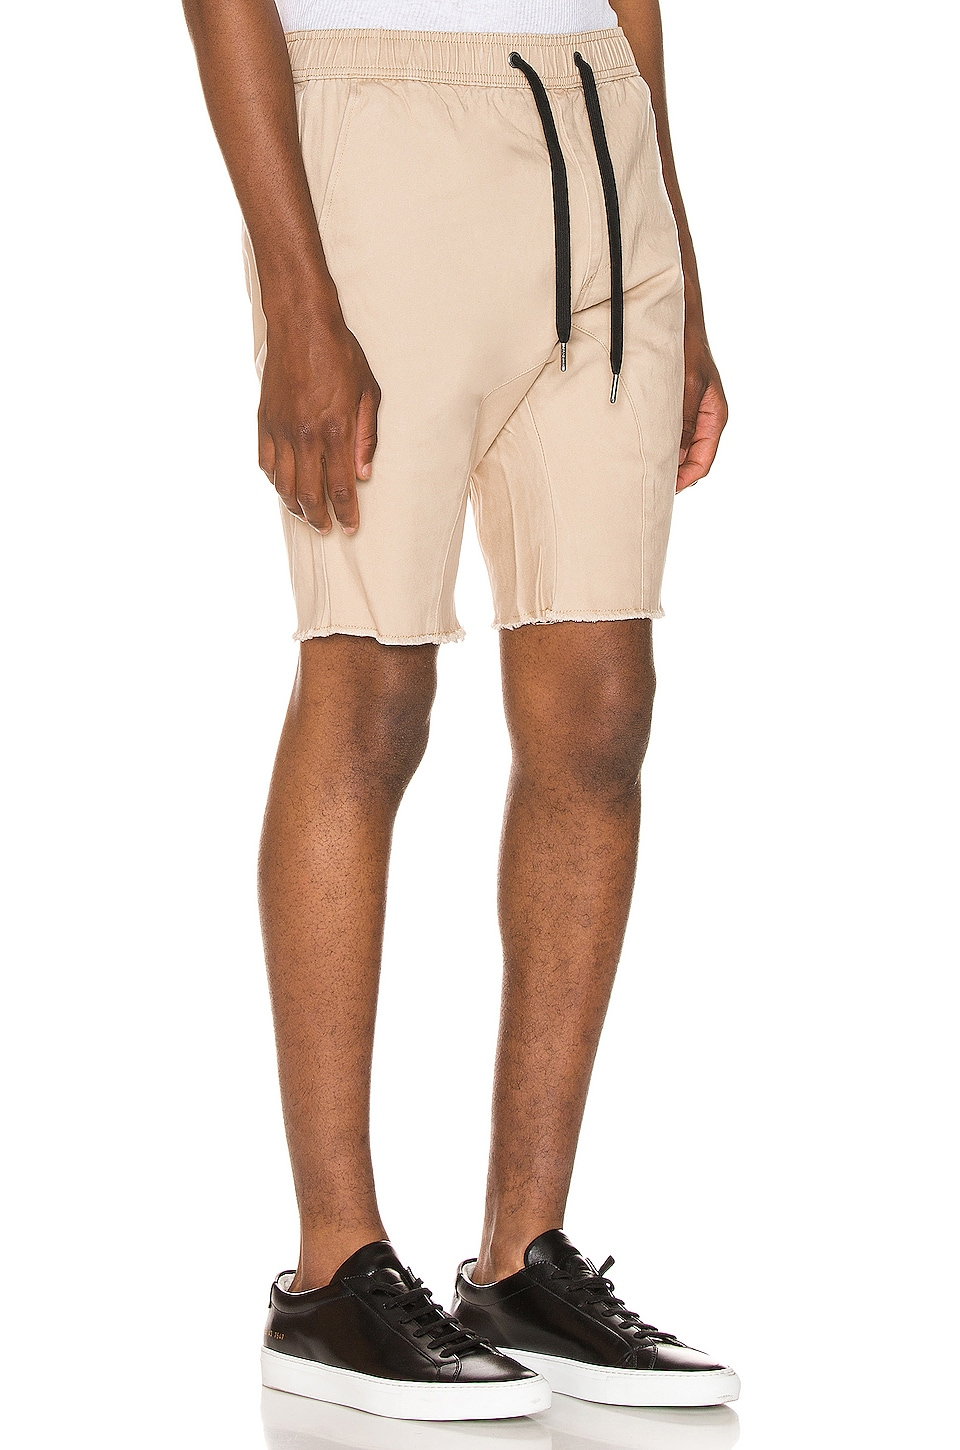 Zanerobe Sureshot Short in Tan